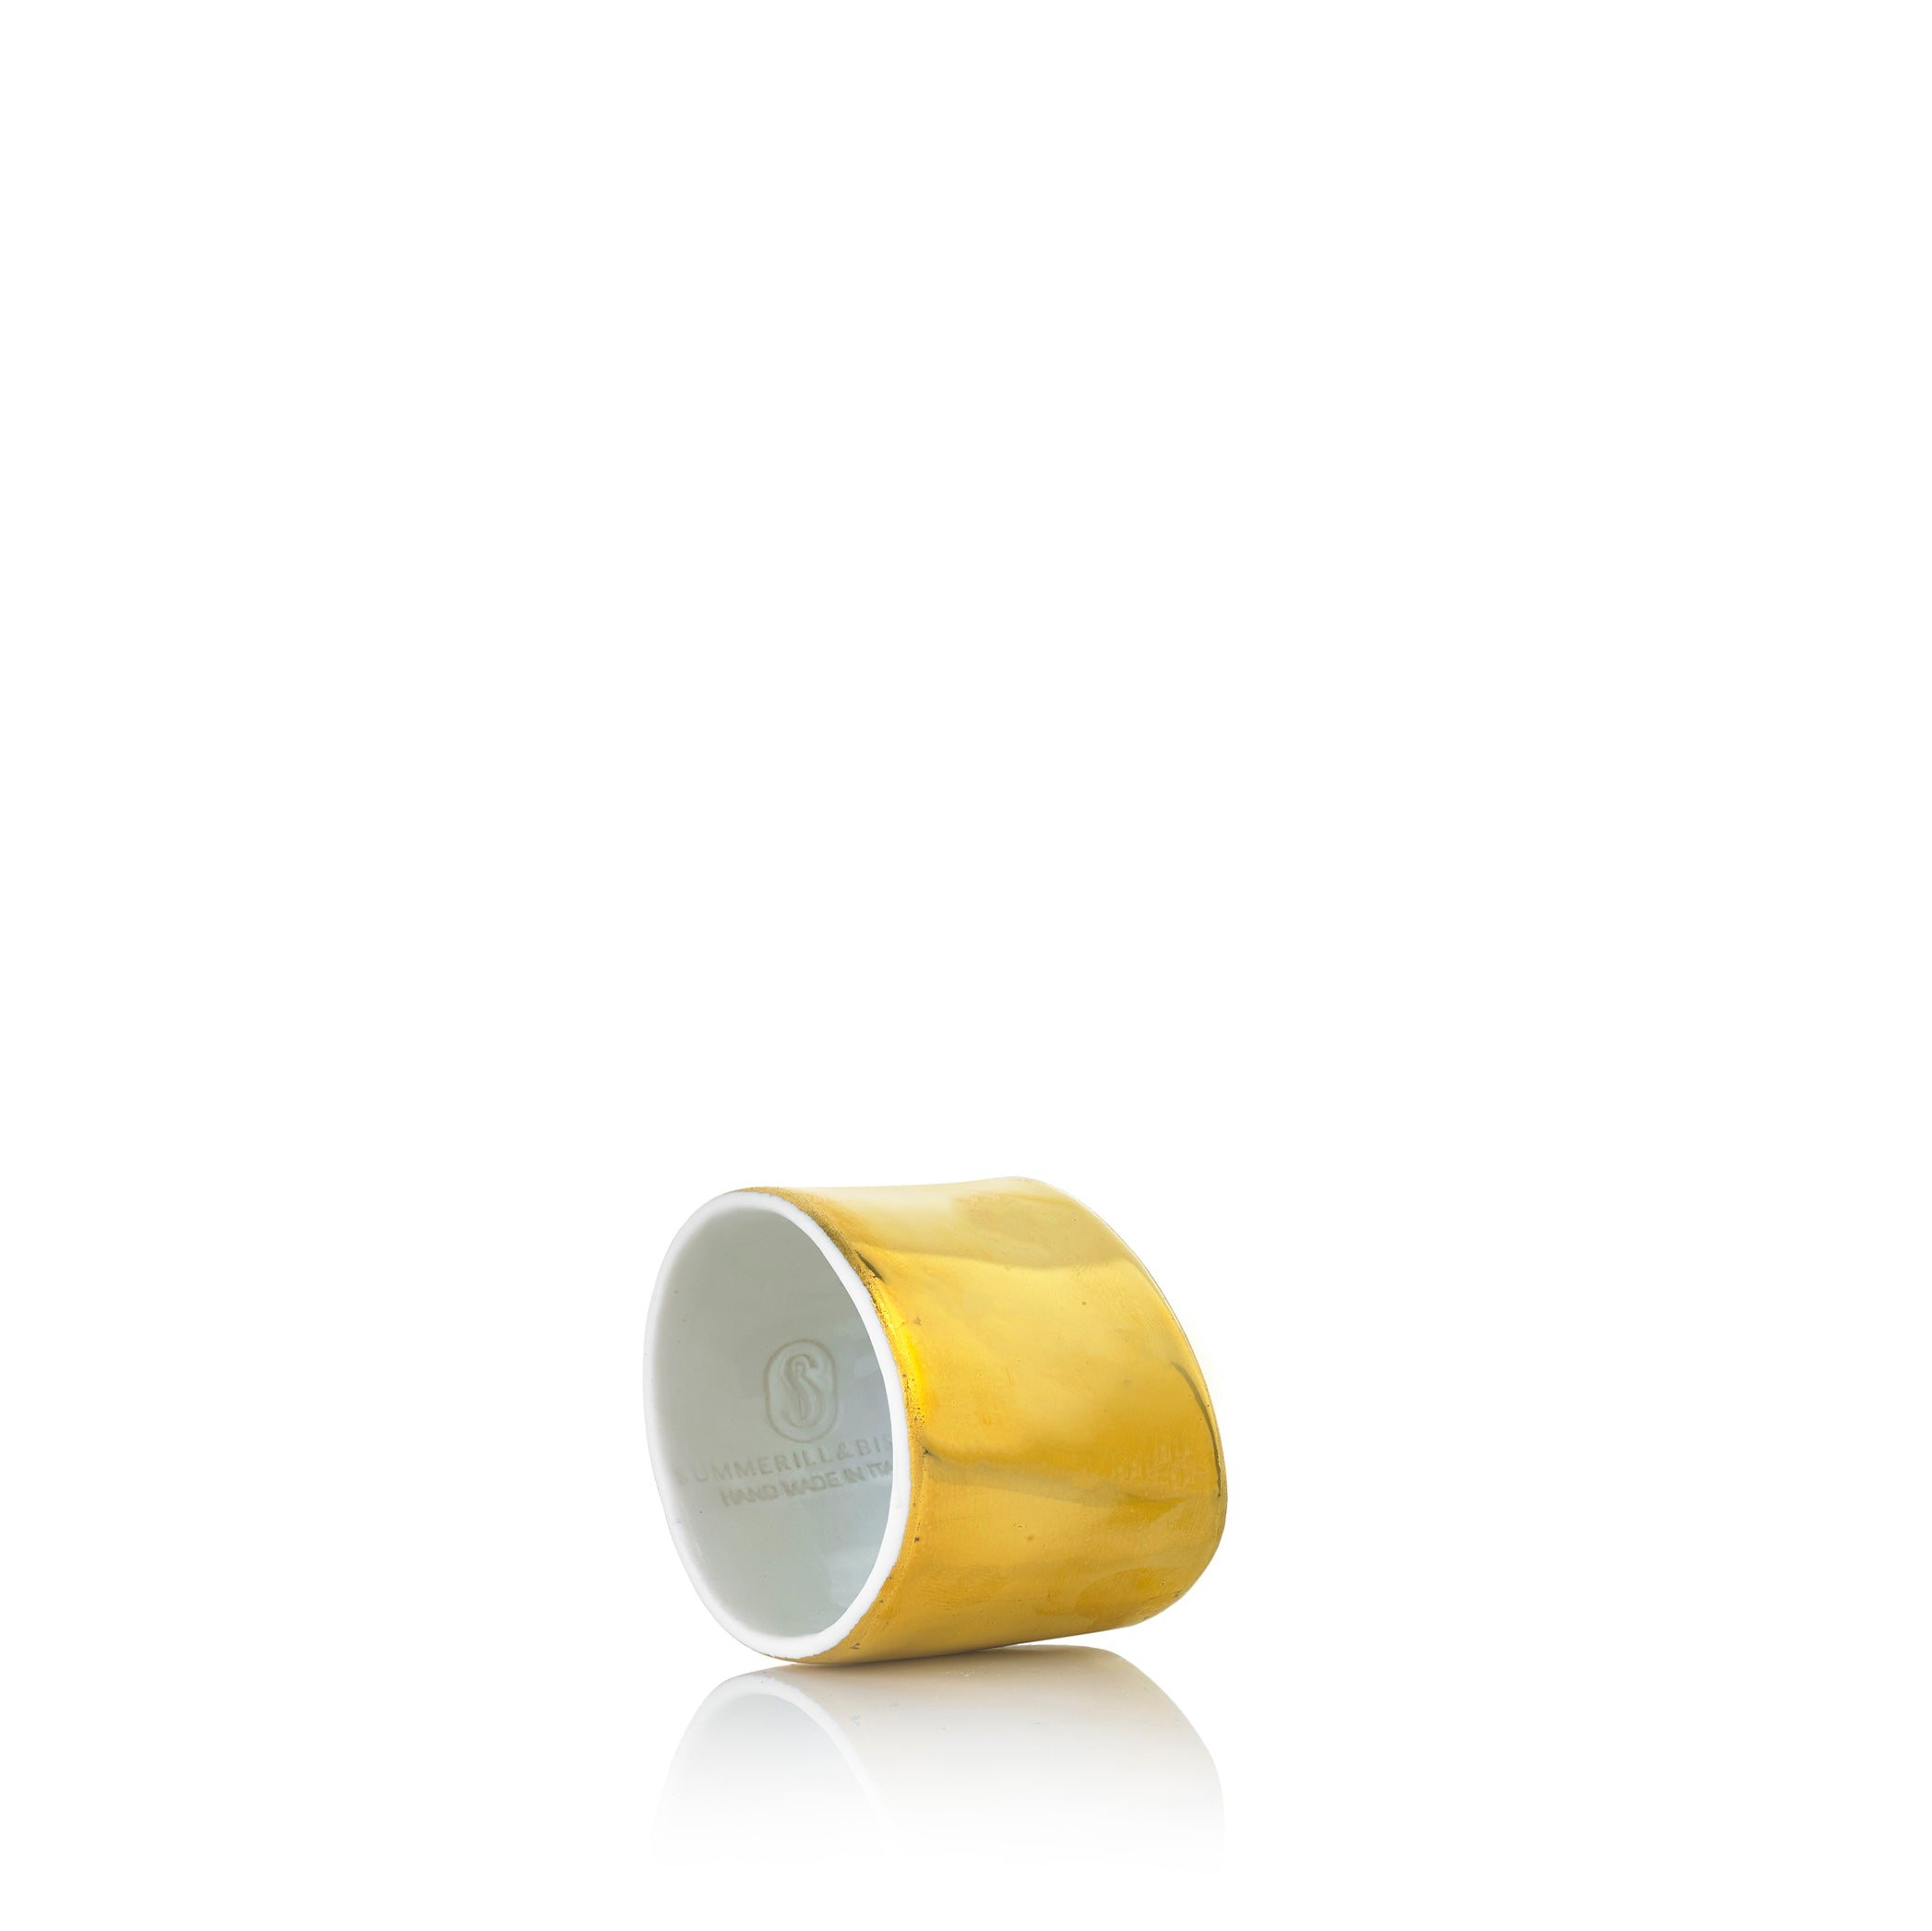 Porcelain Napkin Ring in Gold Glaze